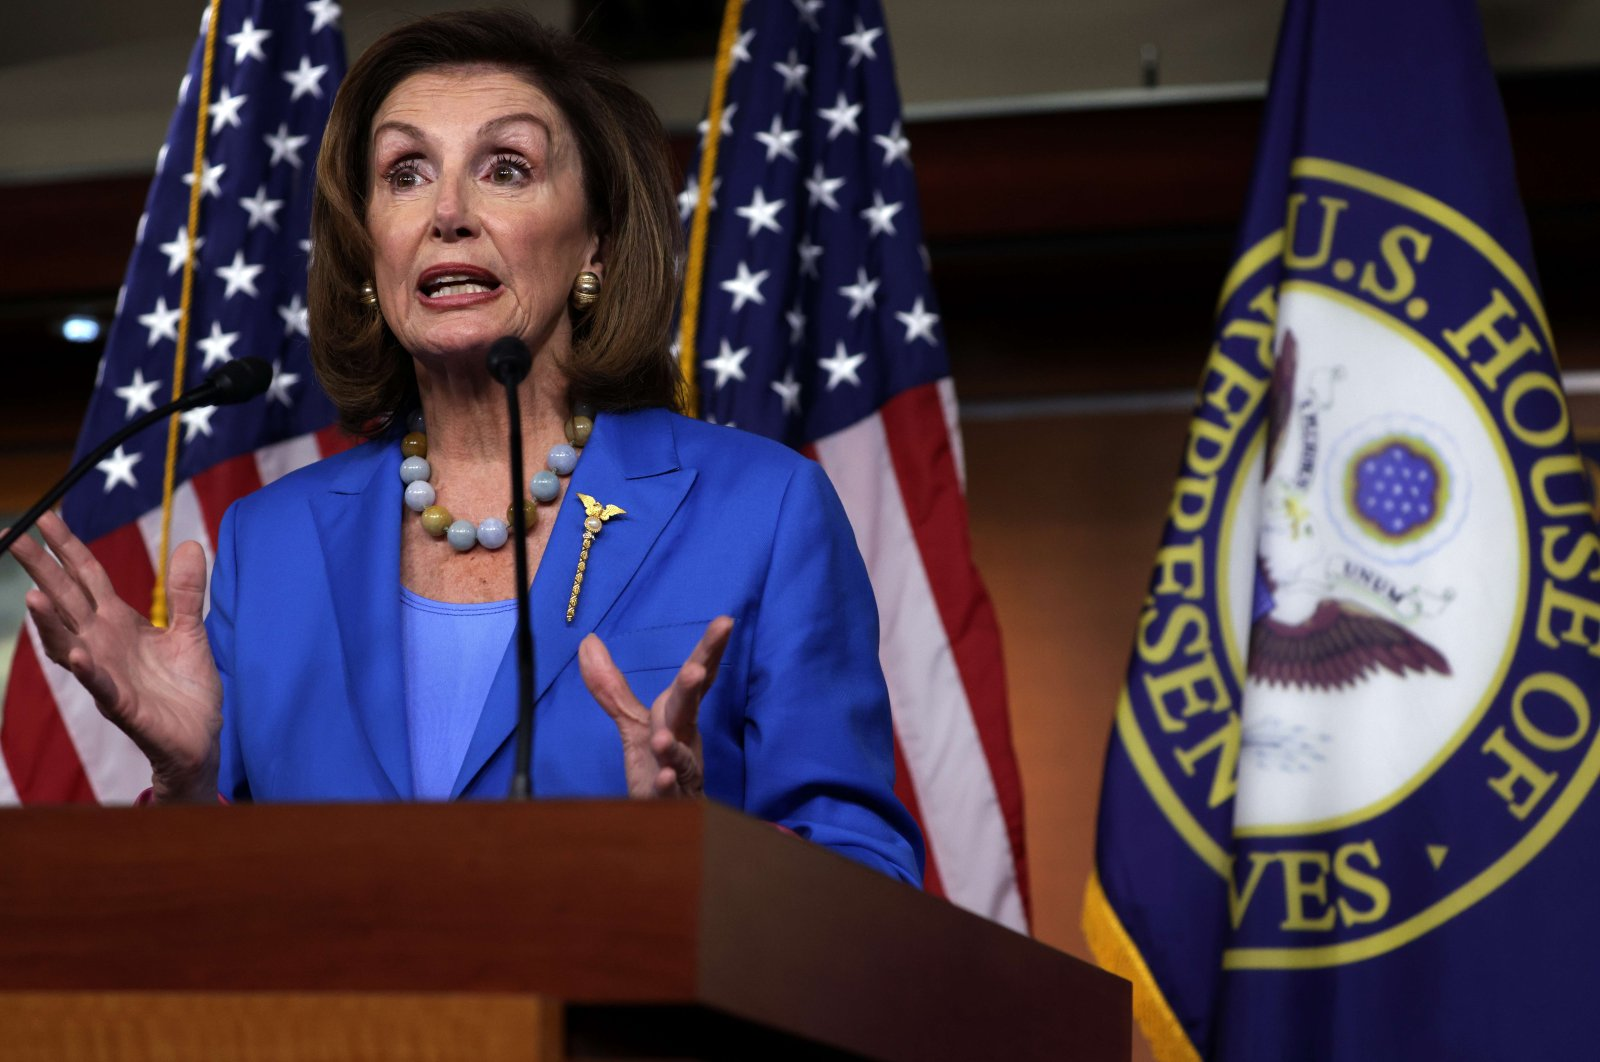 U.S. Speaker of the House Rep. Nancy Pelosi (D-CA) speaks at a weekly news conference at the U.S. Capitol, Washington, D.C., U.S., Sept. 30, 2021. (AFP Photo)